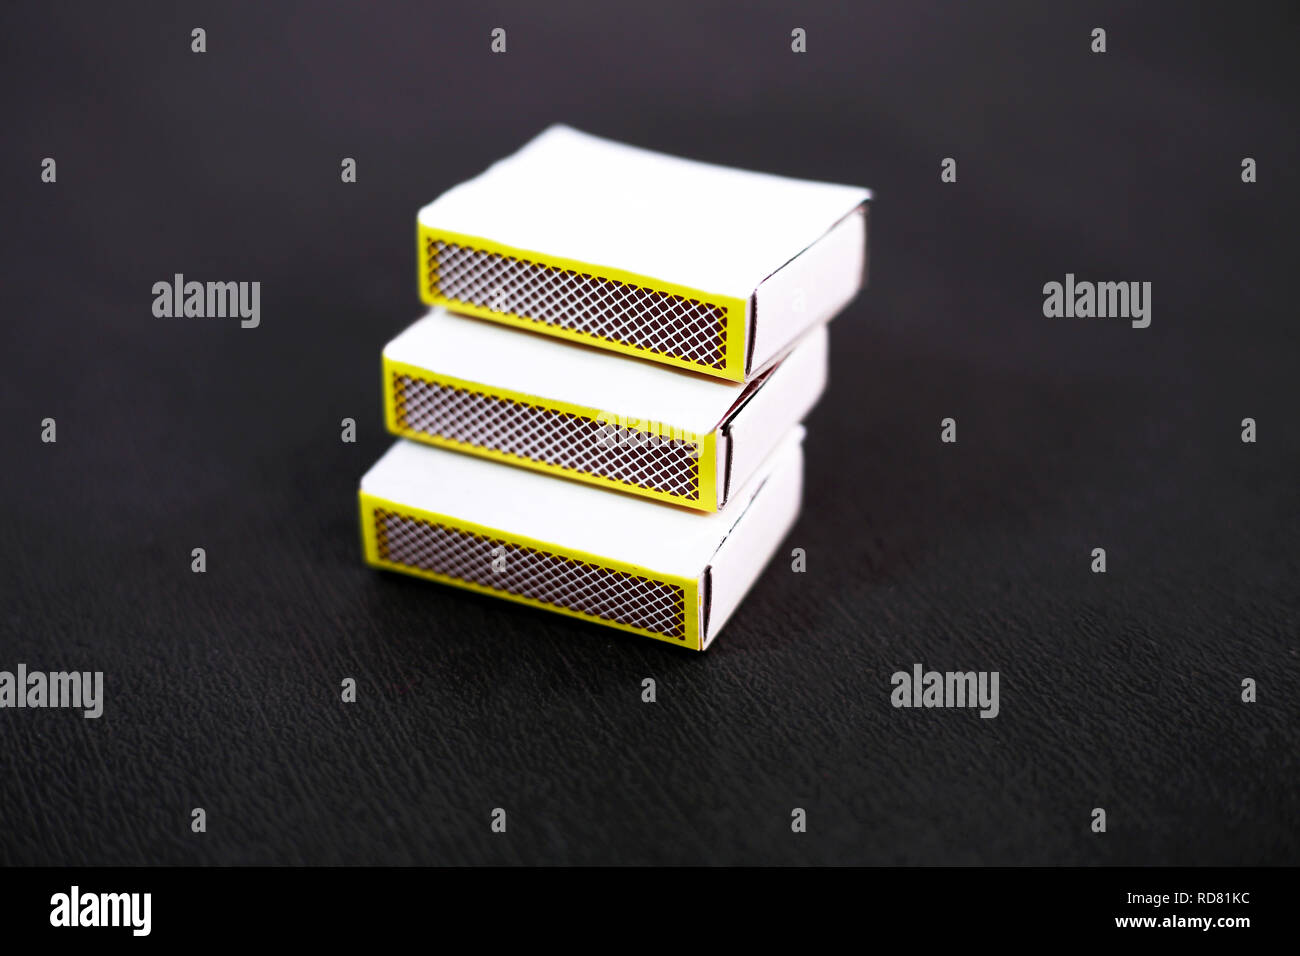 Portrait of match box. Isolated on the black background. - Stock Image